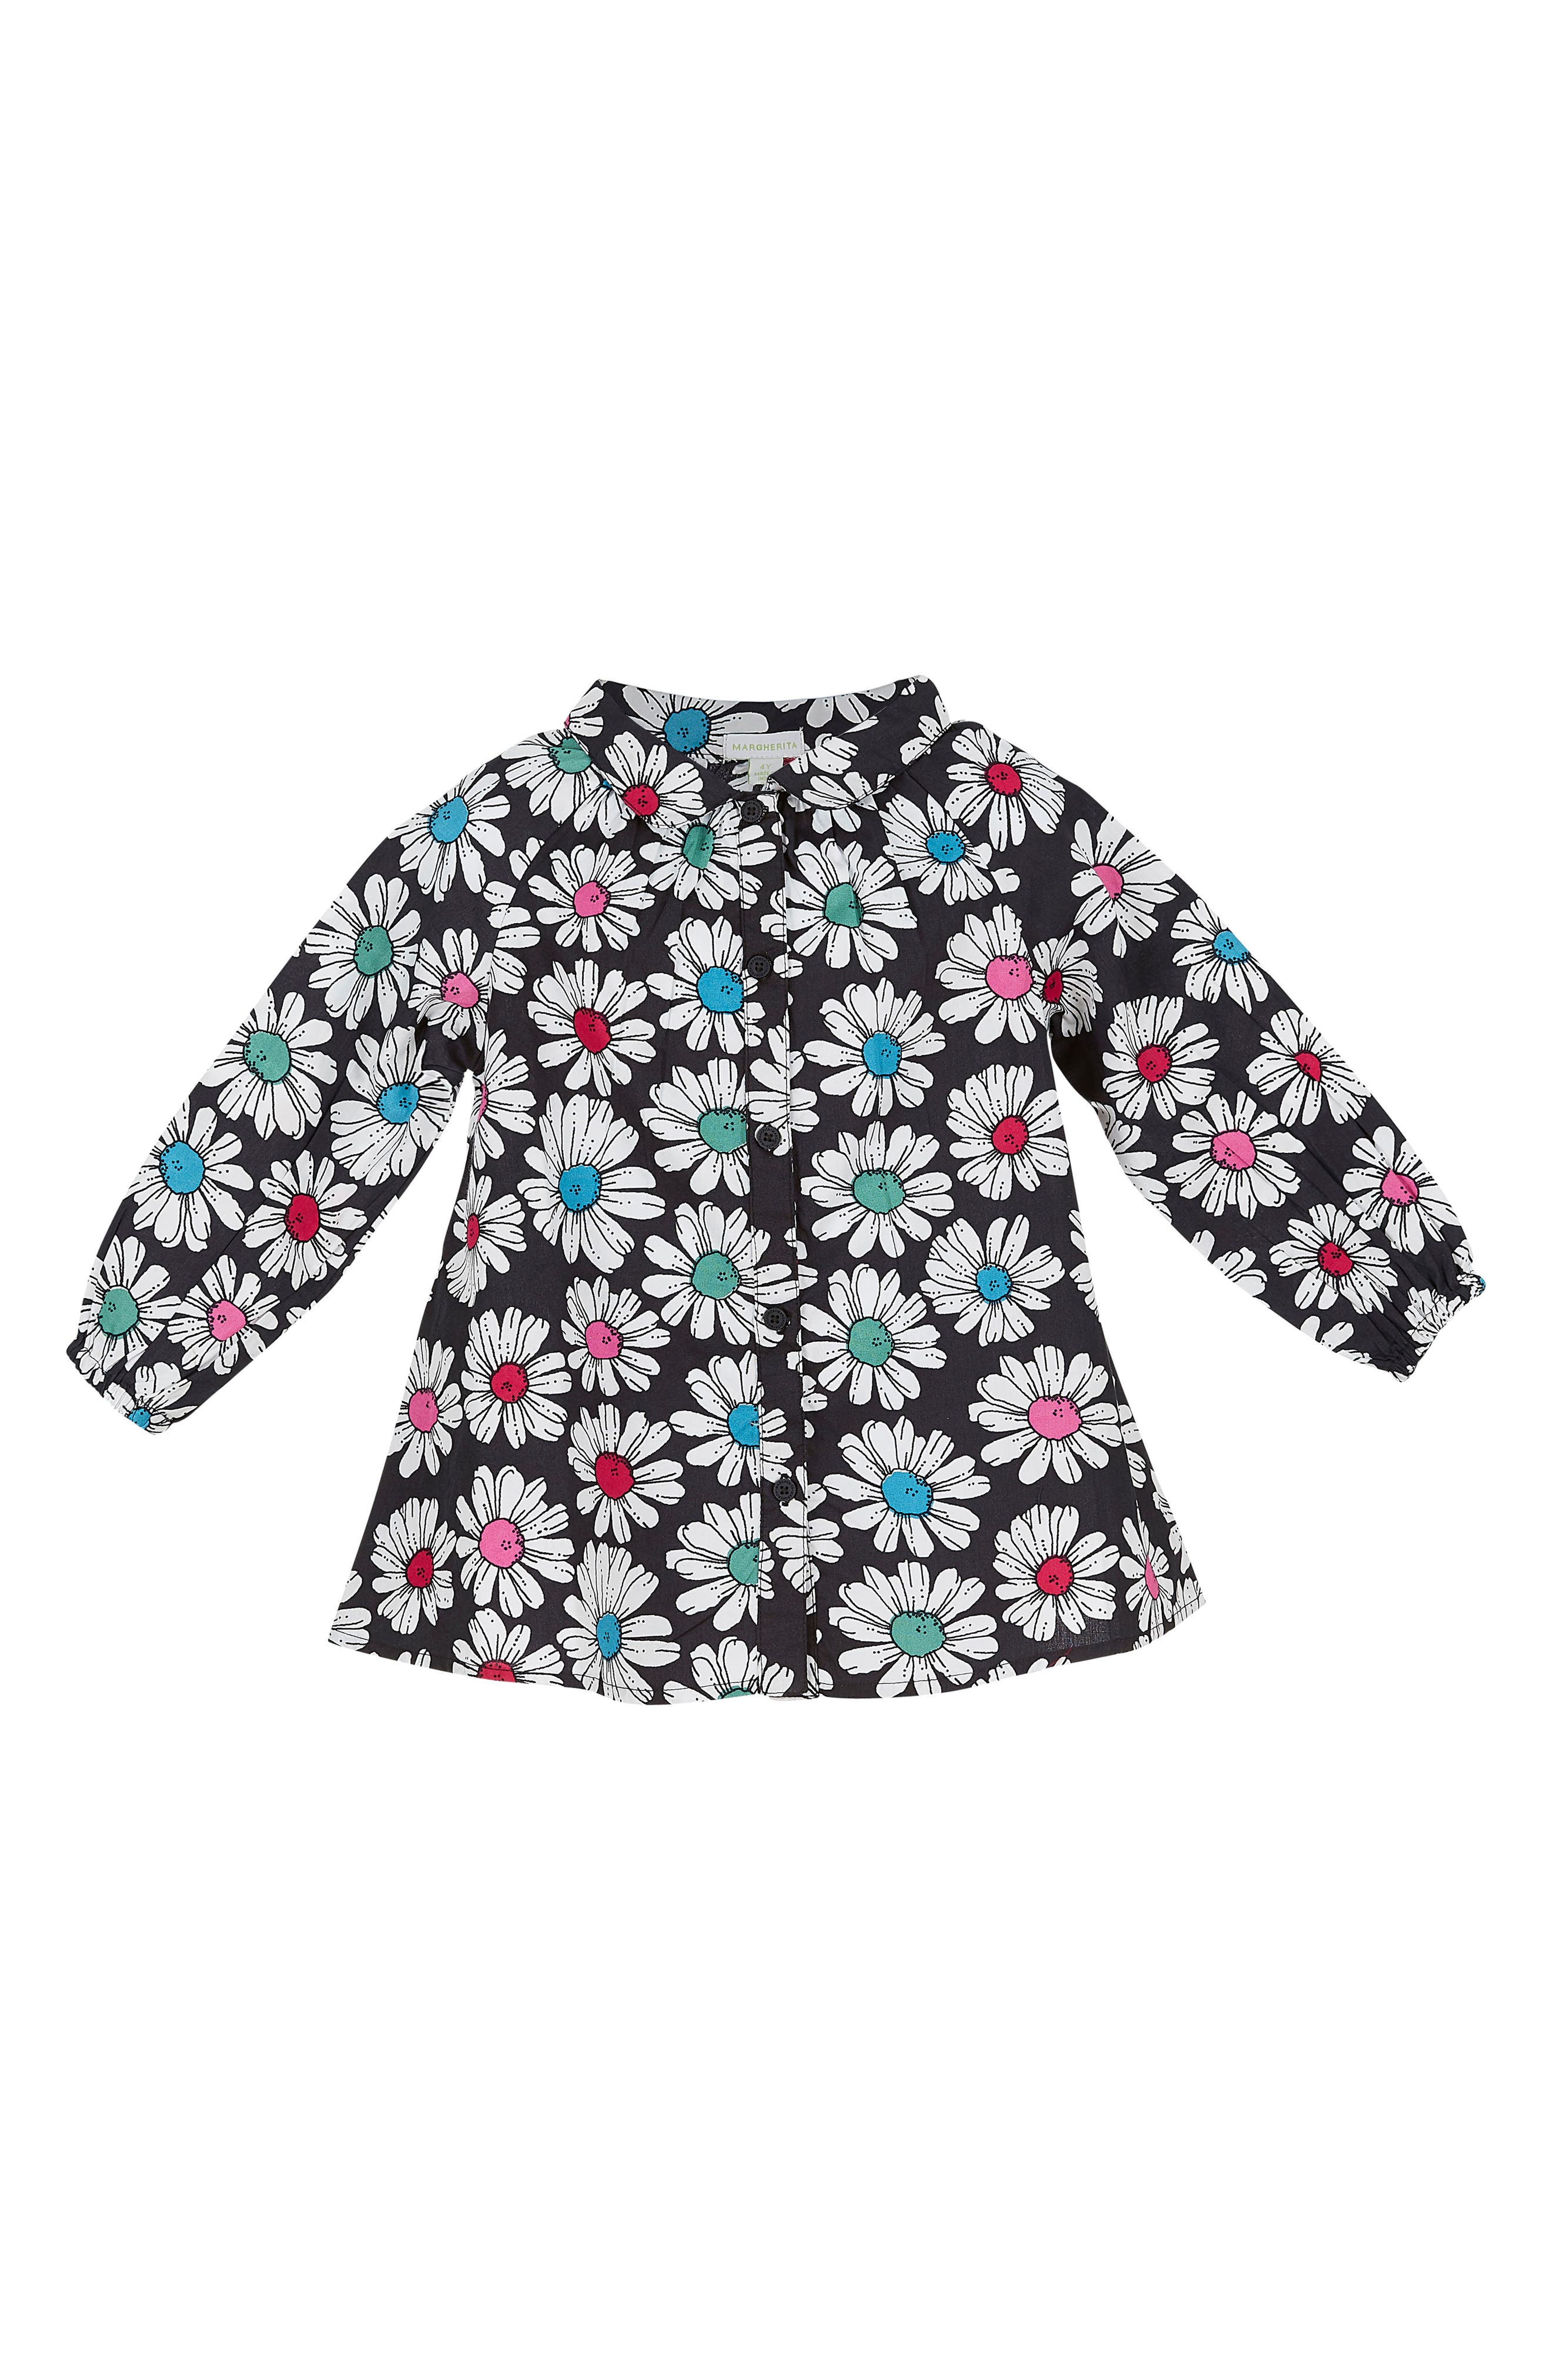 Floral Print Pleated Shirt,                             Alternate thumbnail 2, color,                             001